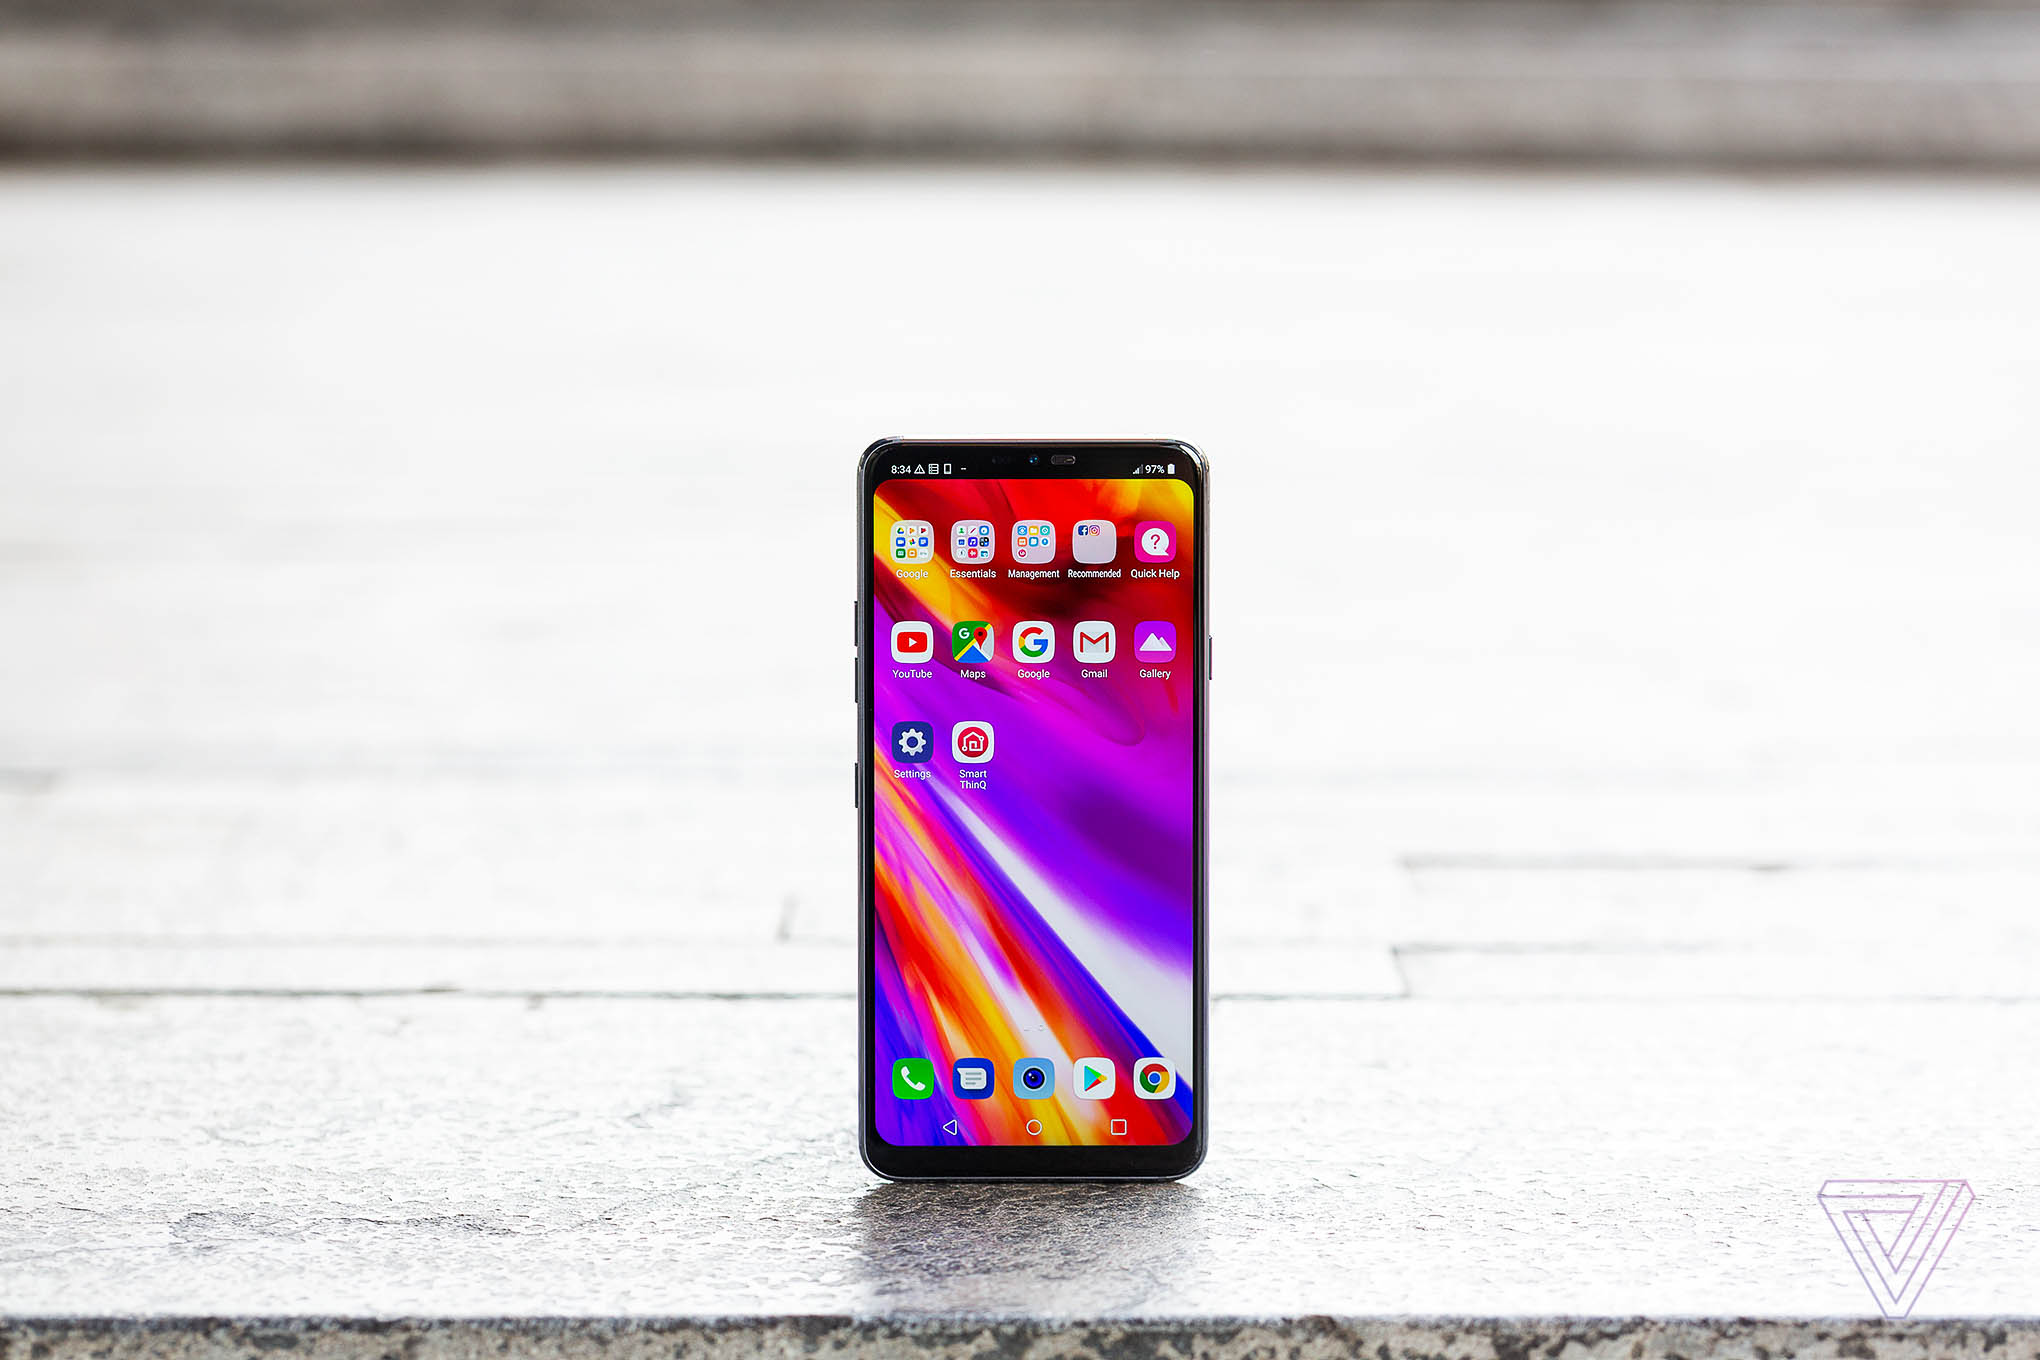 LG's G7 isn't even trying to compete with the best phones - The Verge